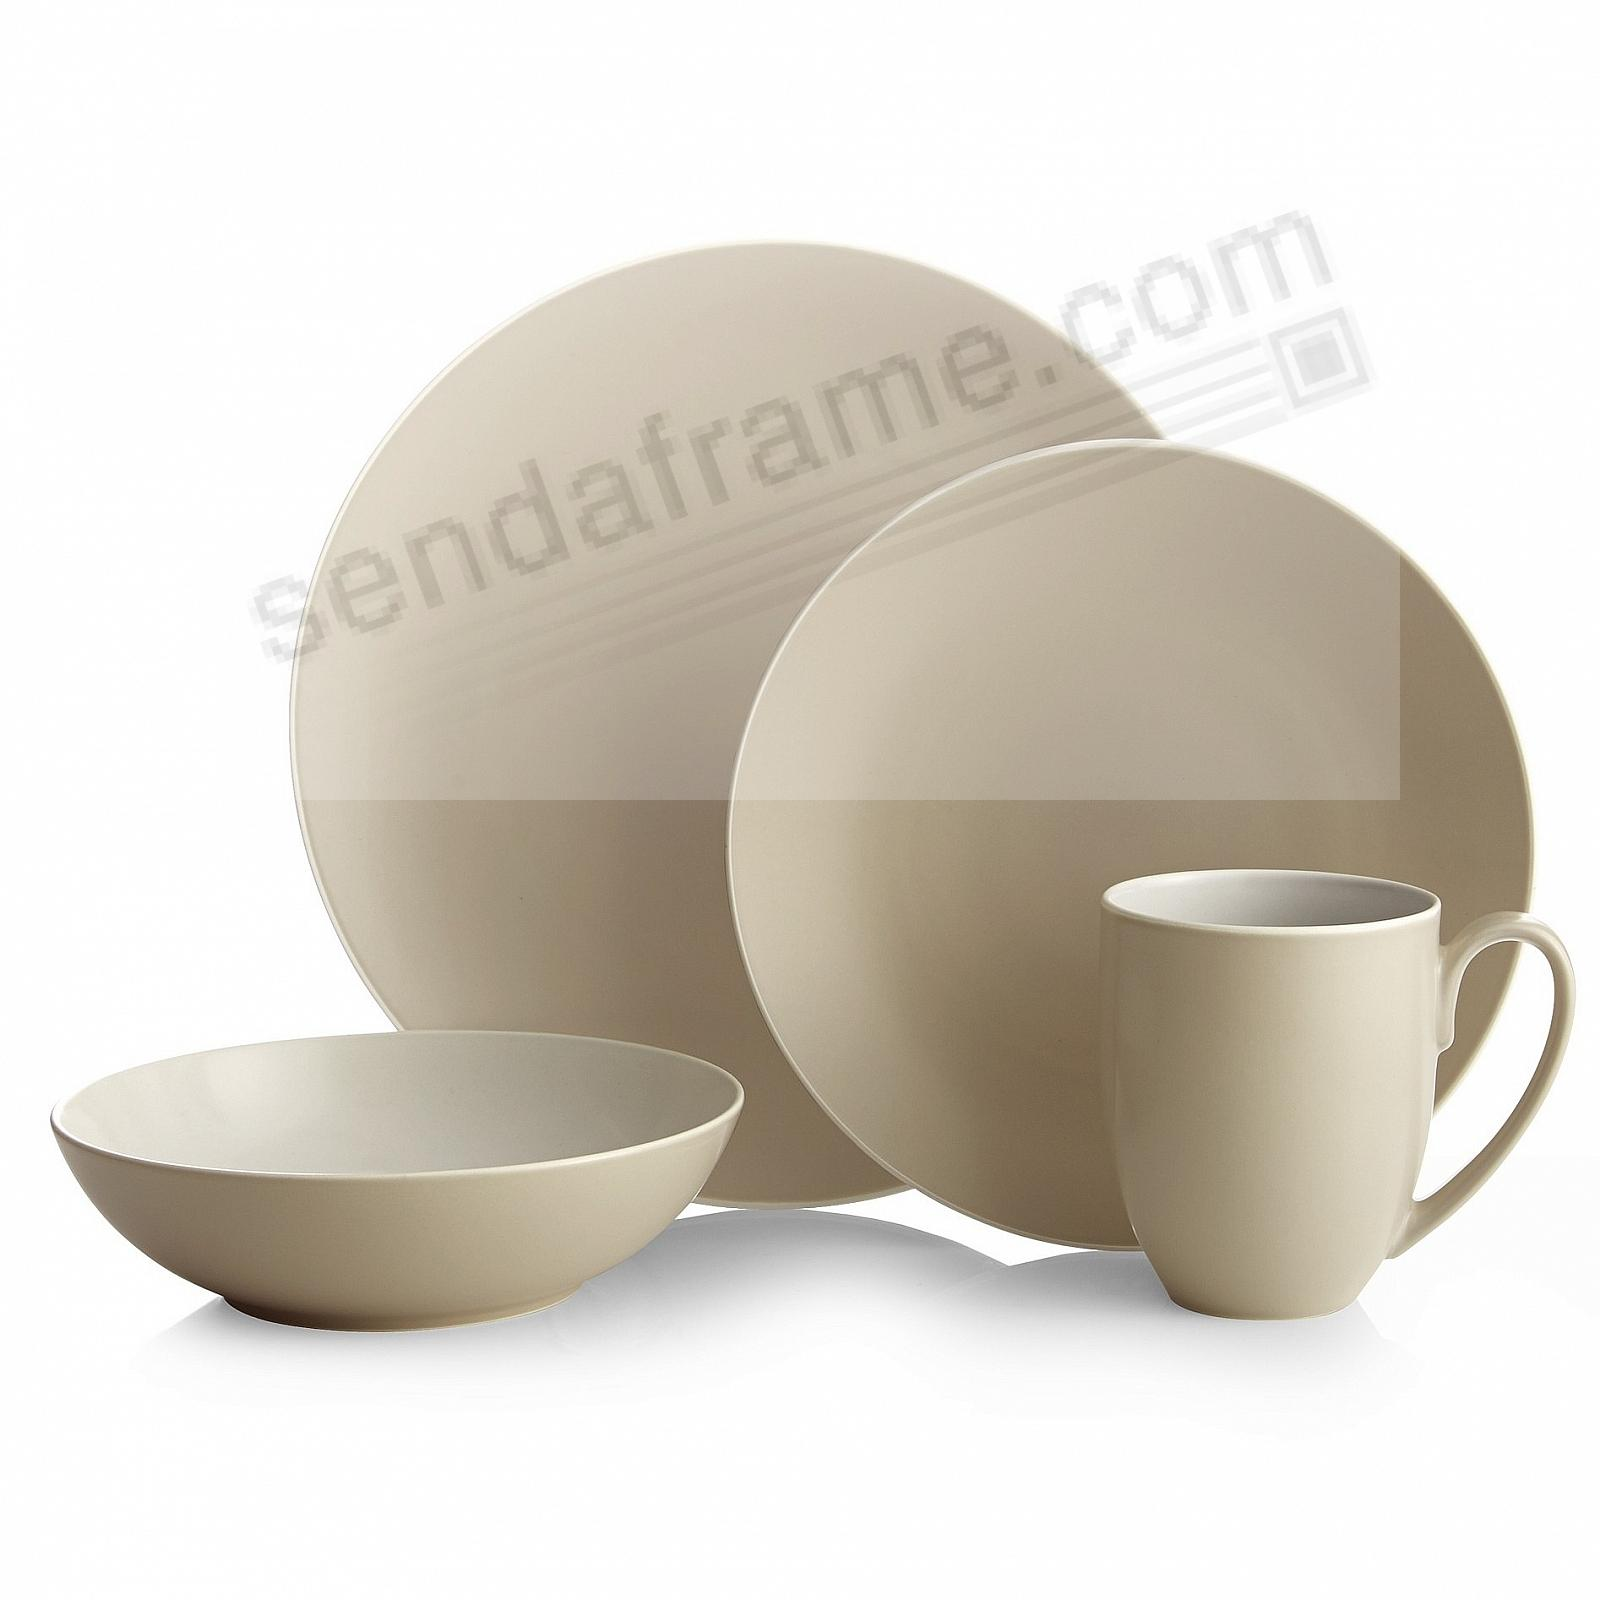 POP 4PC Place Setting SAND by Nambe®